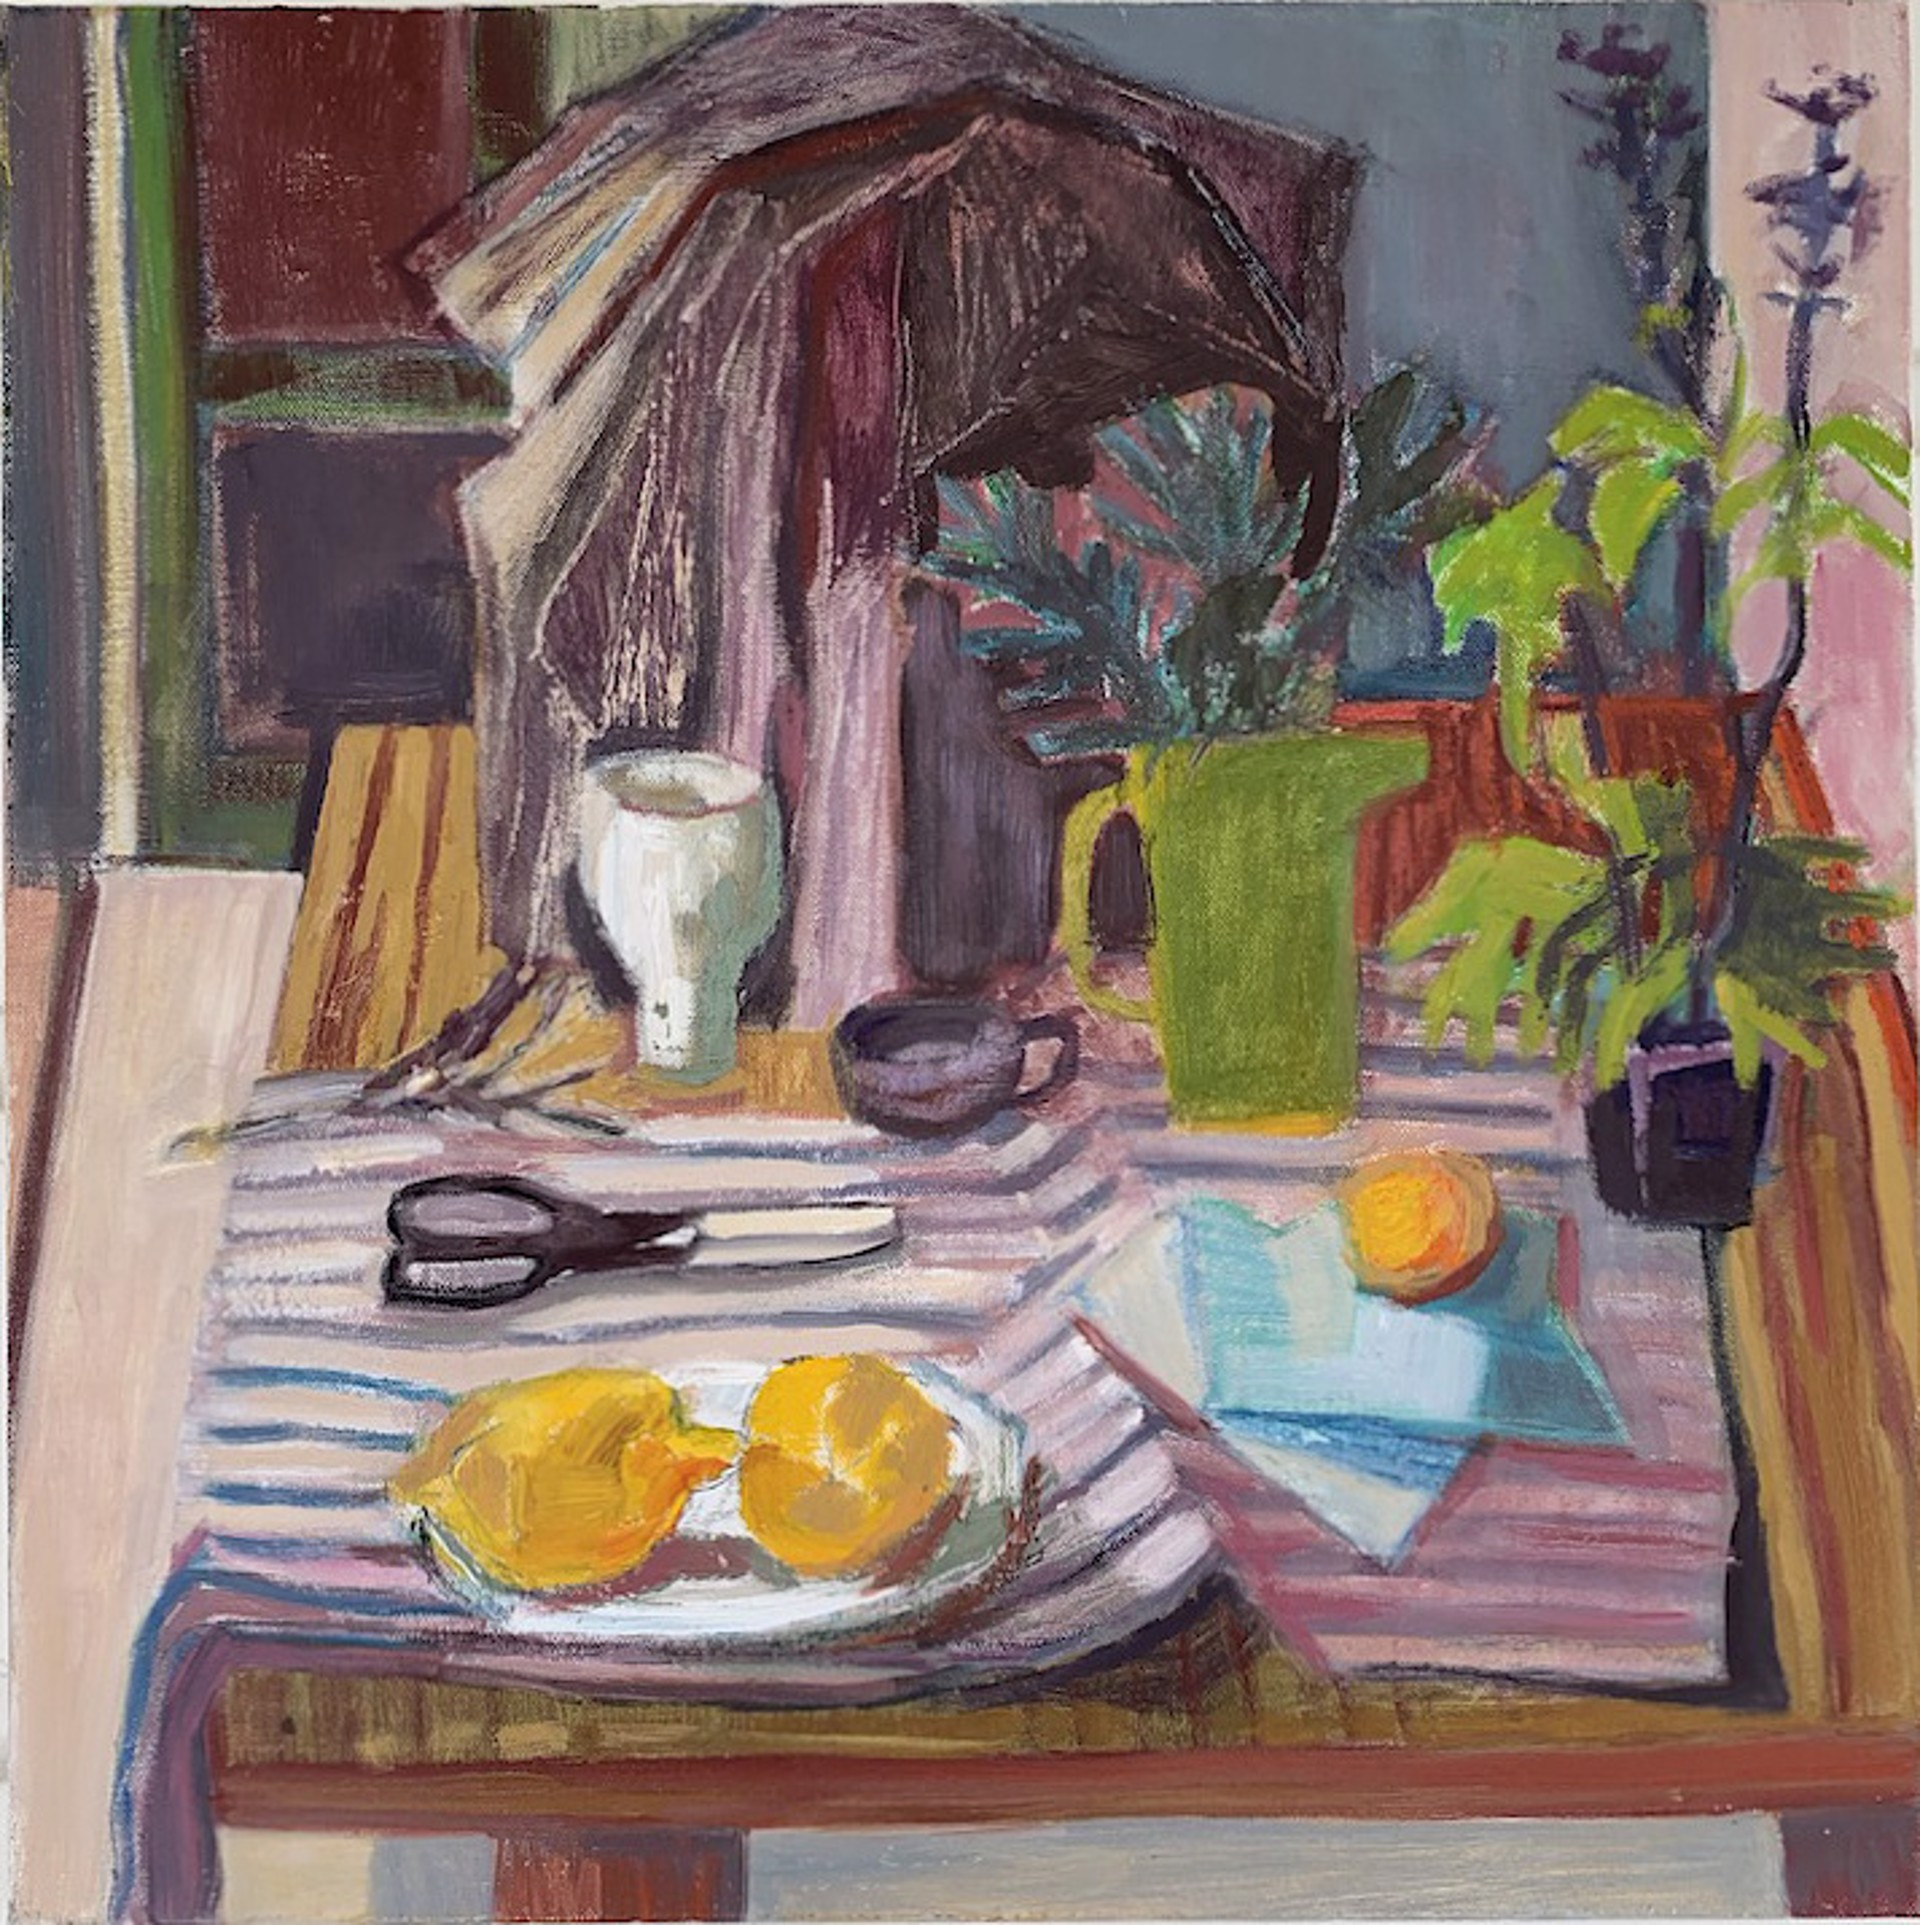 Still Life with Green Pitcher by Maggie Shepherd